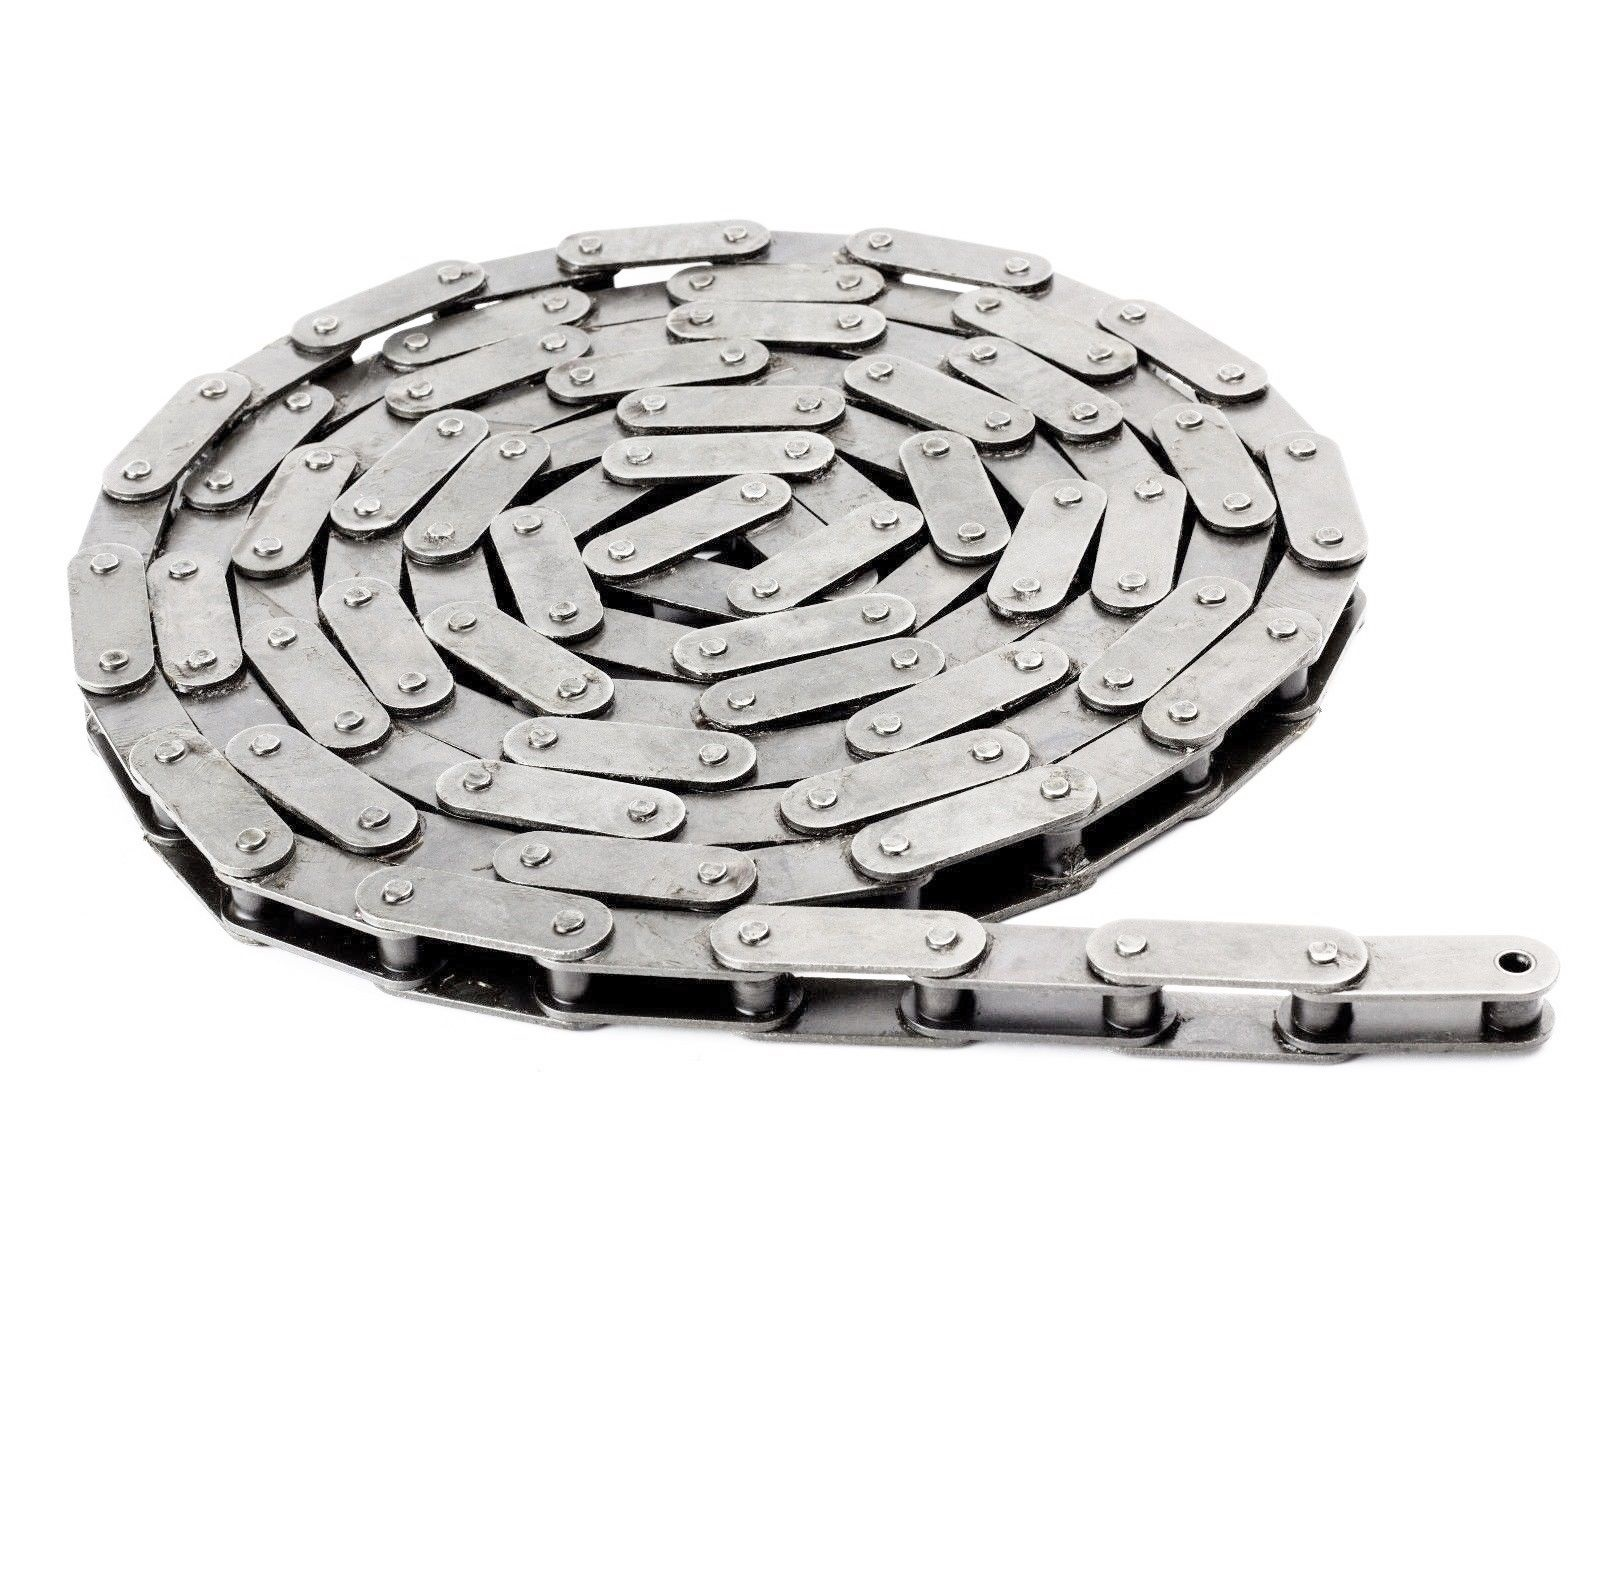 Flat Top Conveyor Chain Accessory Pack of 10